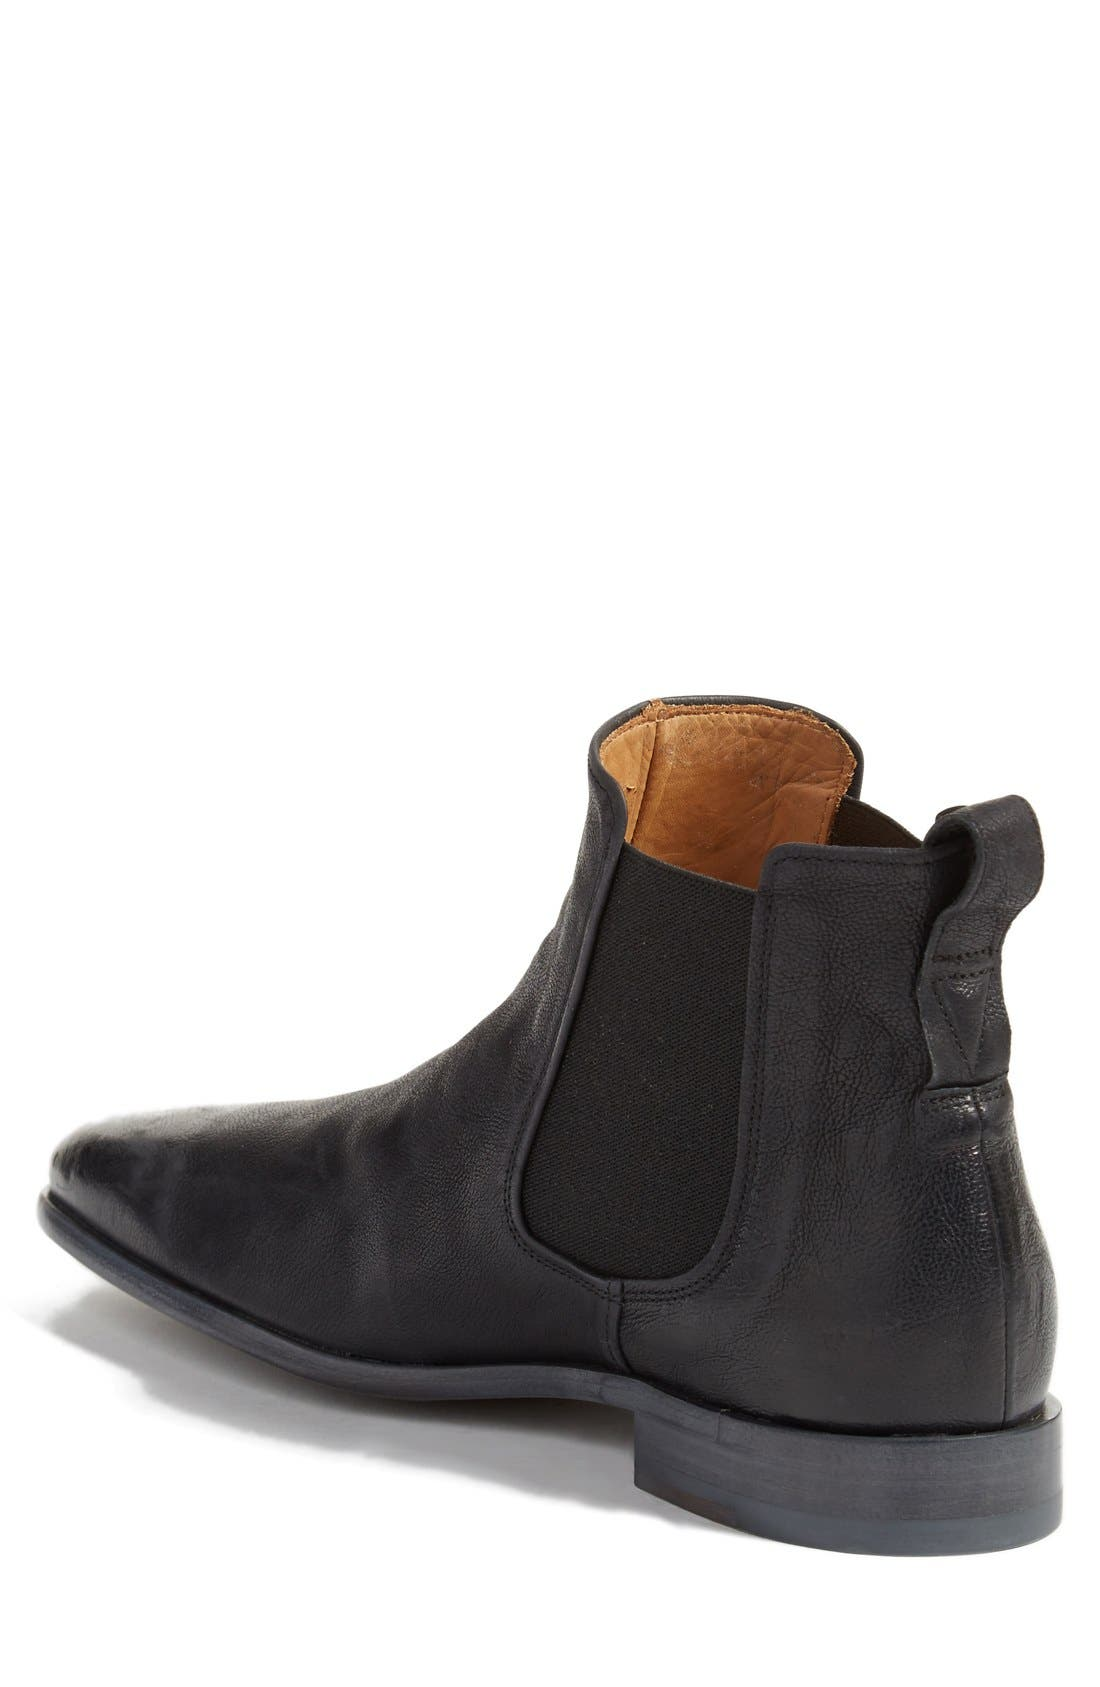 Arthur Chelsea Boot,                             Alternate thumbnail 13, color,